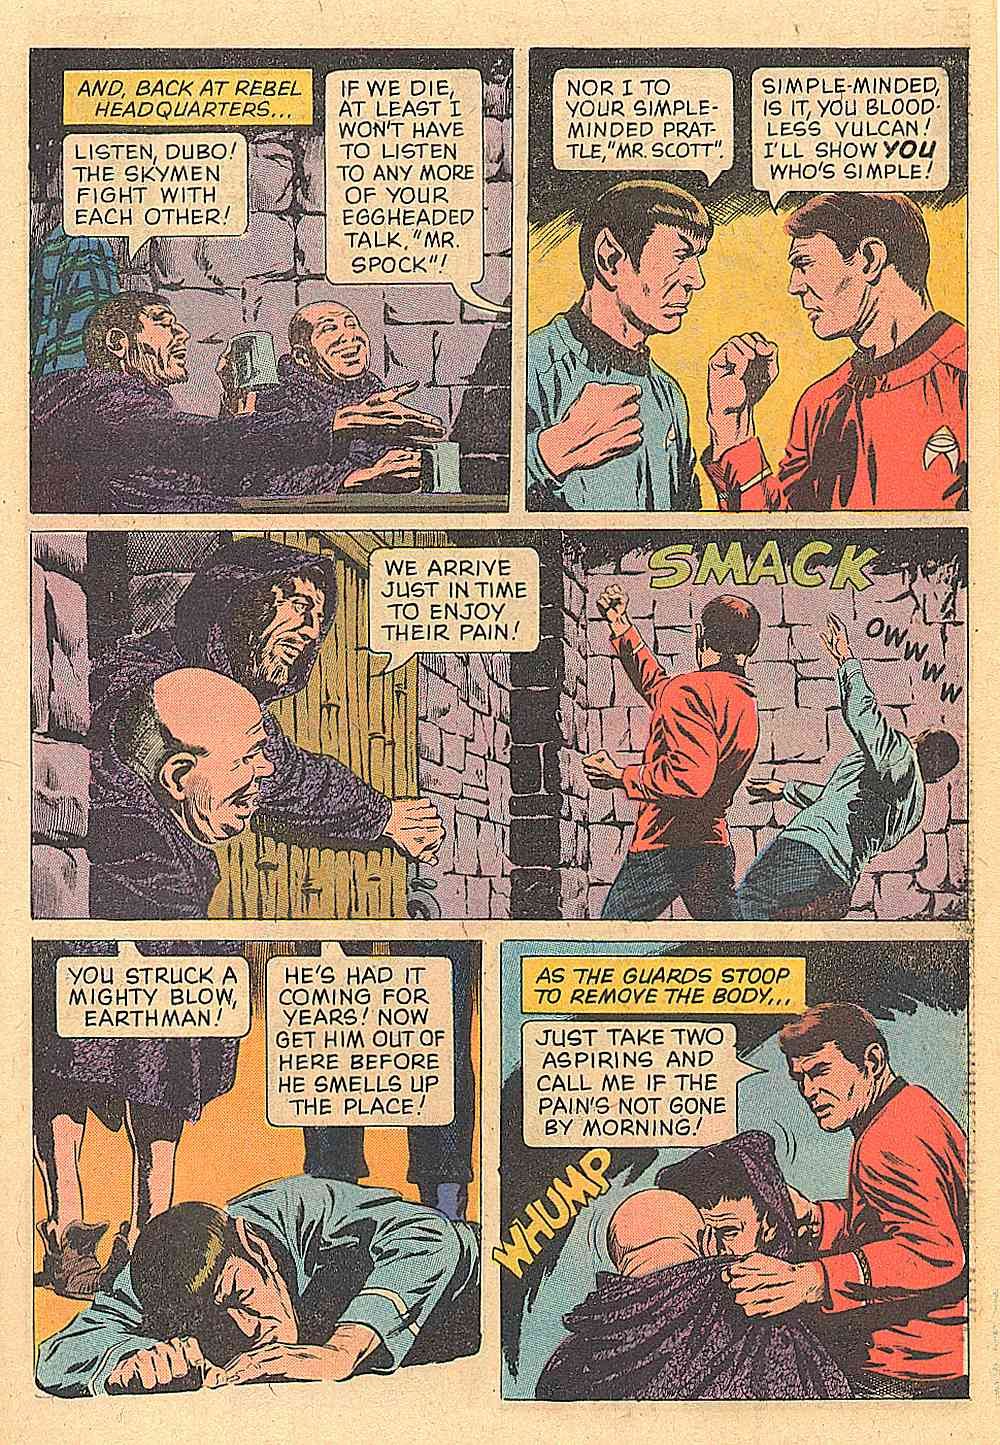 Star Trek (1967) #44 #44 - English 19